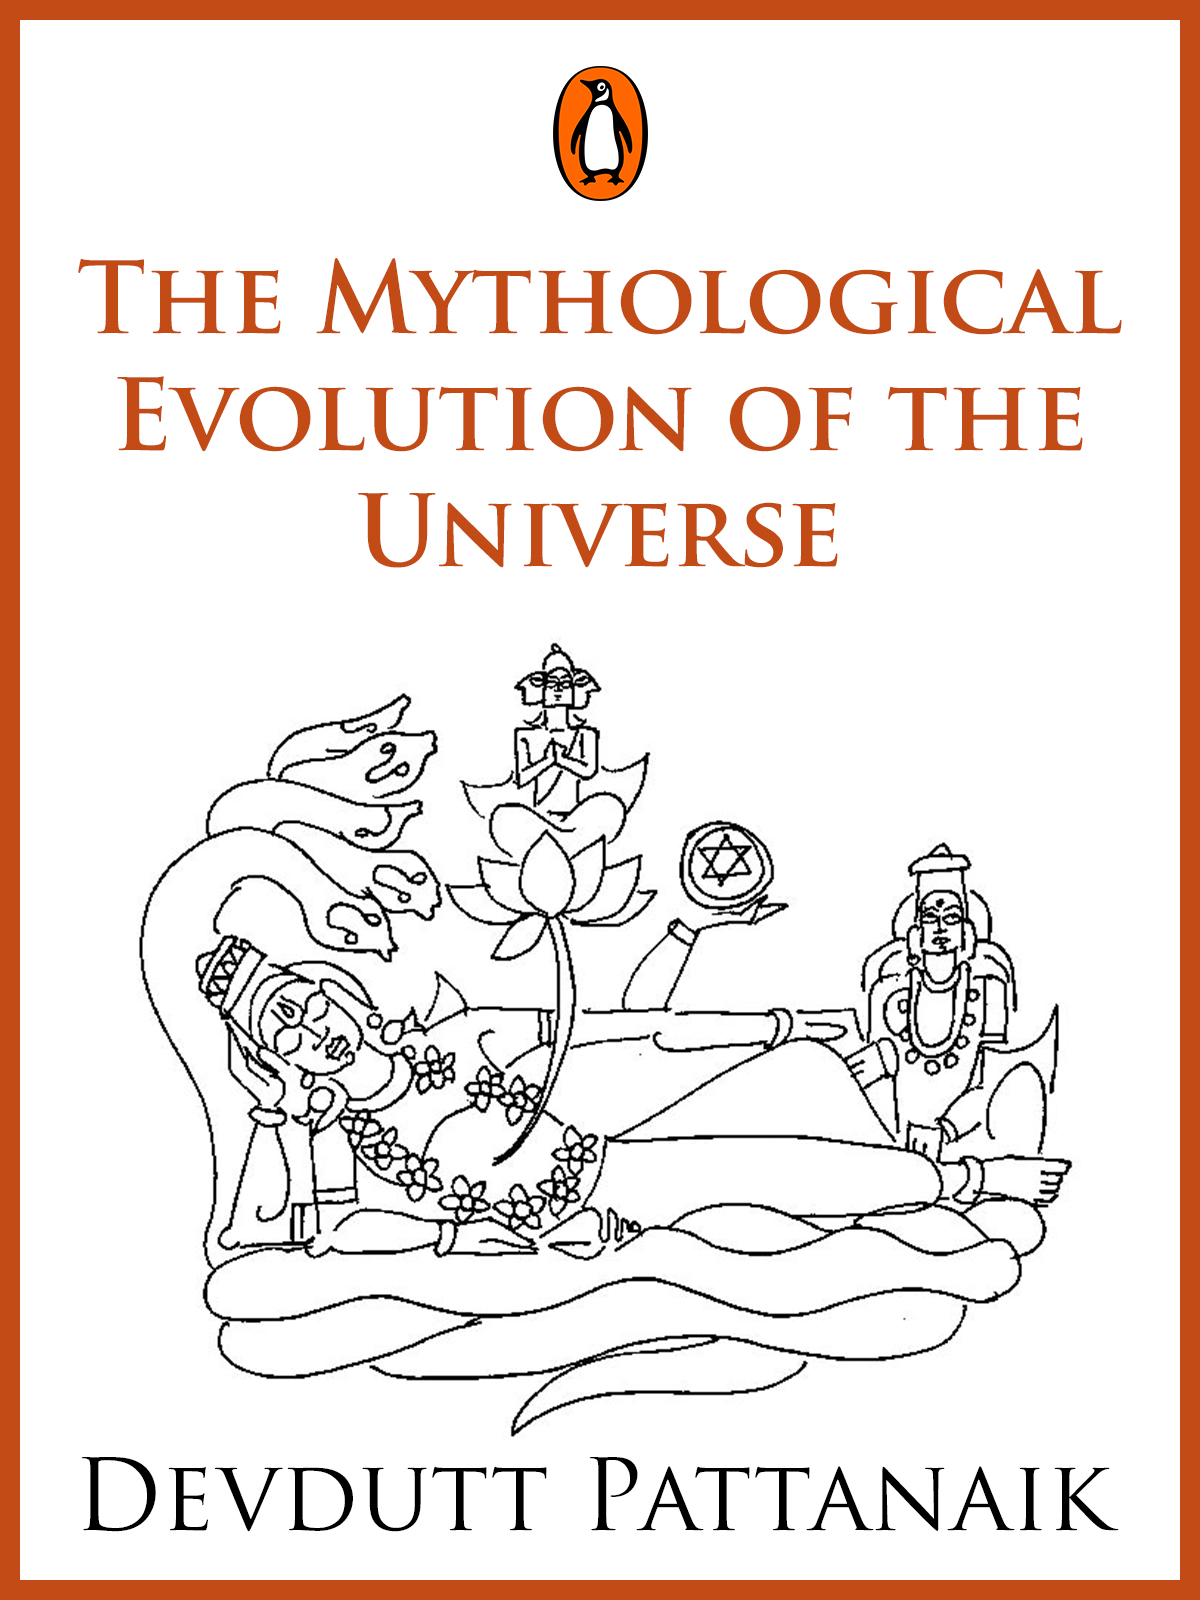 The Mythological Evolution of the Universe